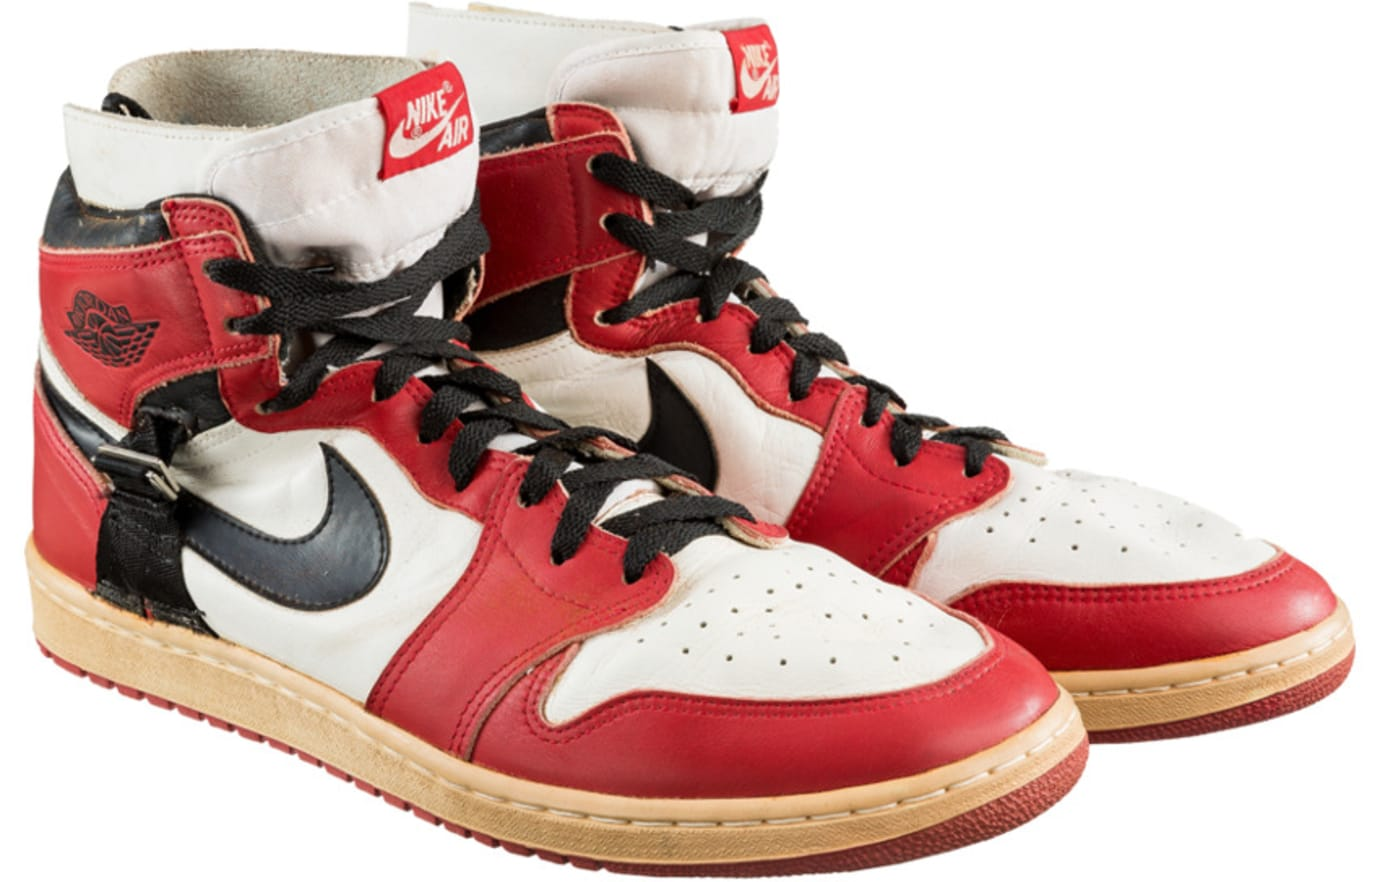 510c361ba79c75 Air Jordan 1 Post-Injury Modification Sample from 1986 Sells at ...